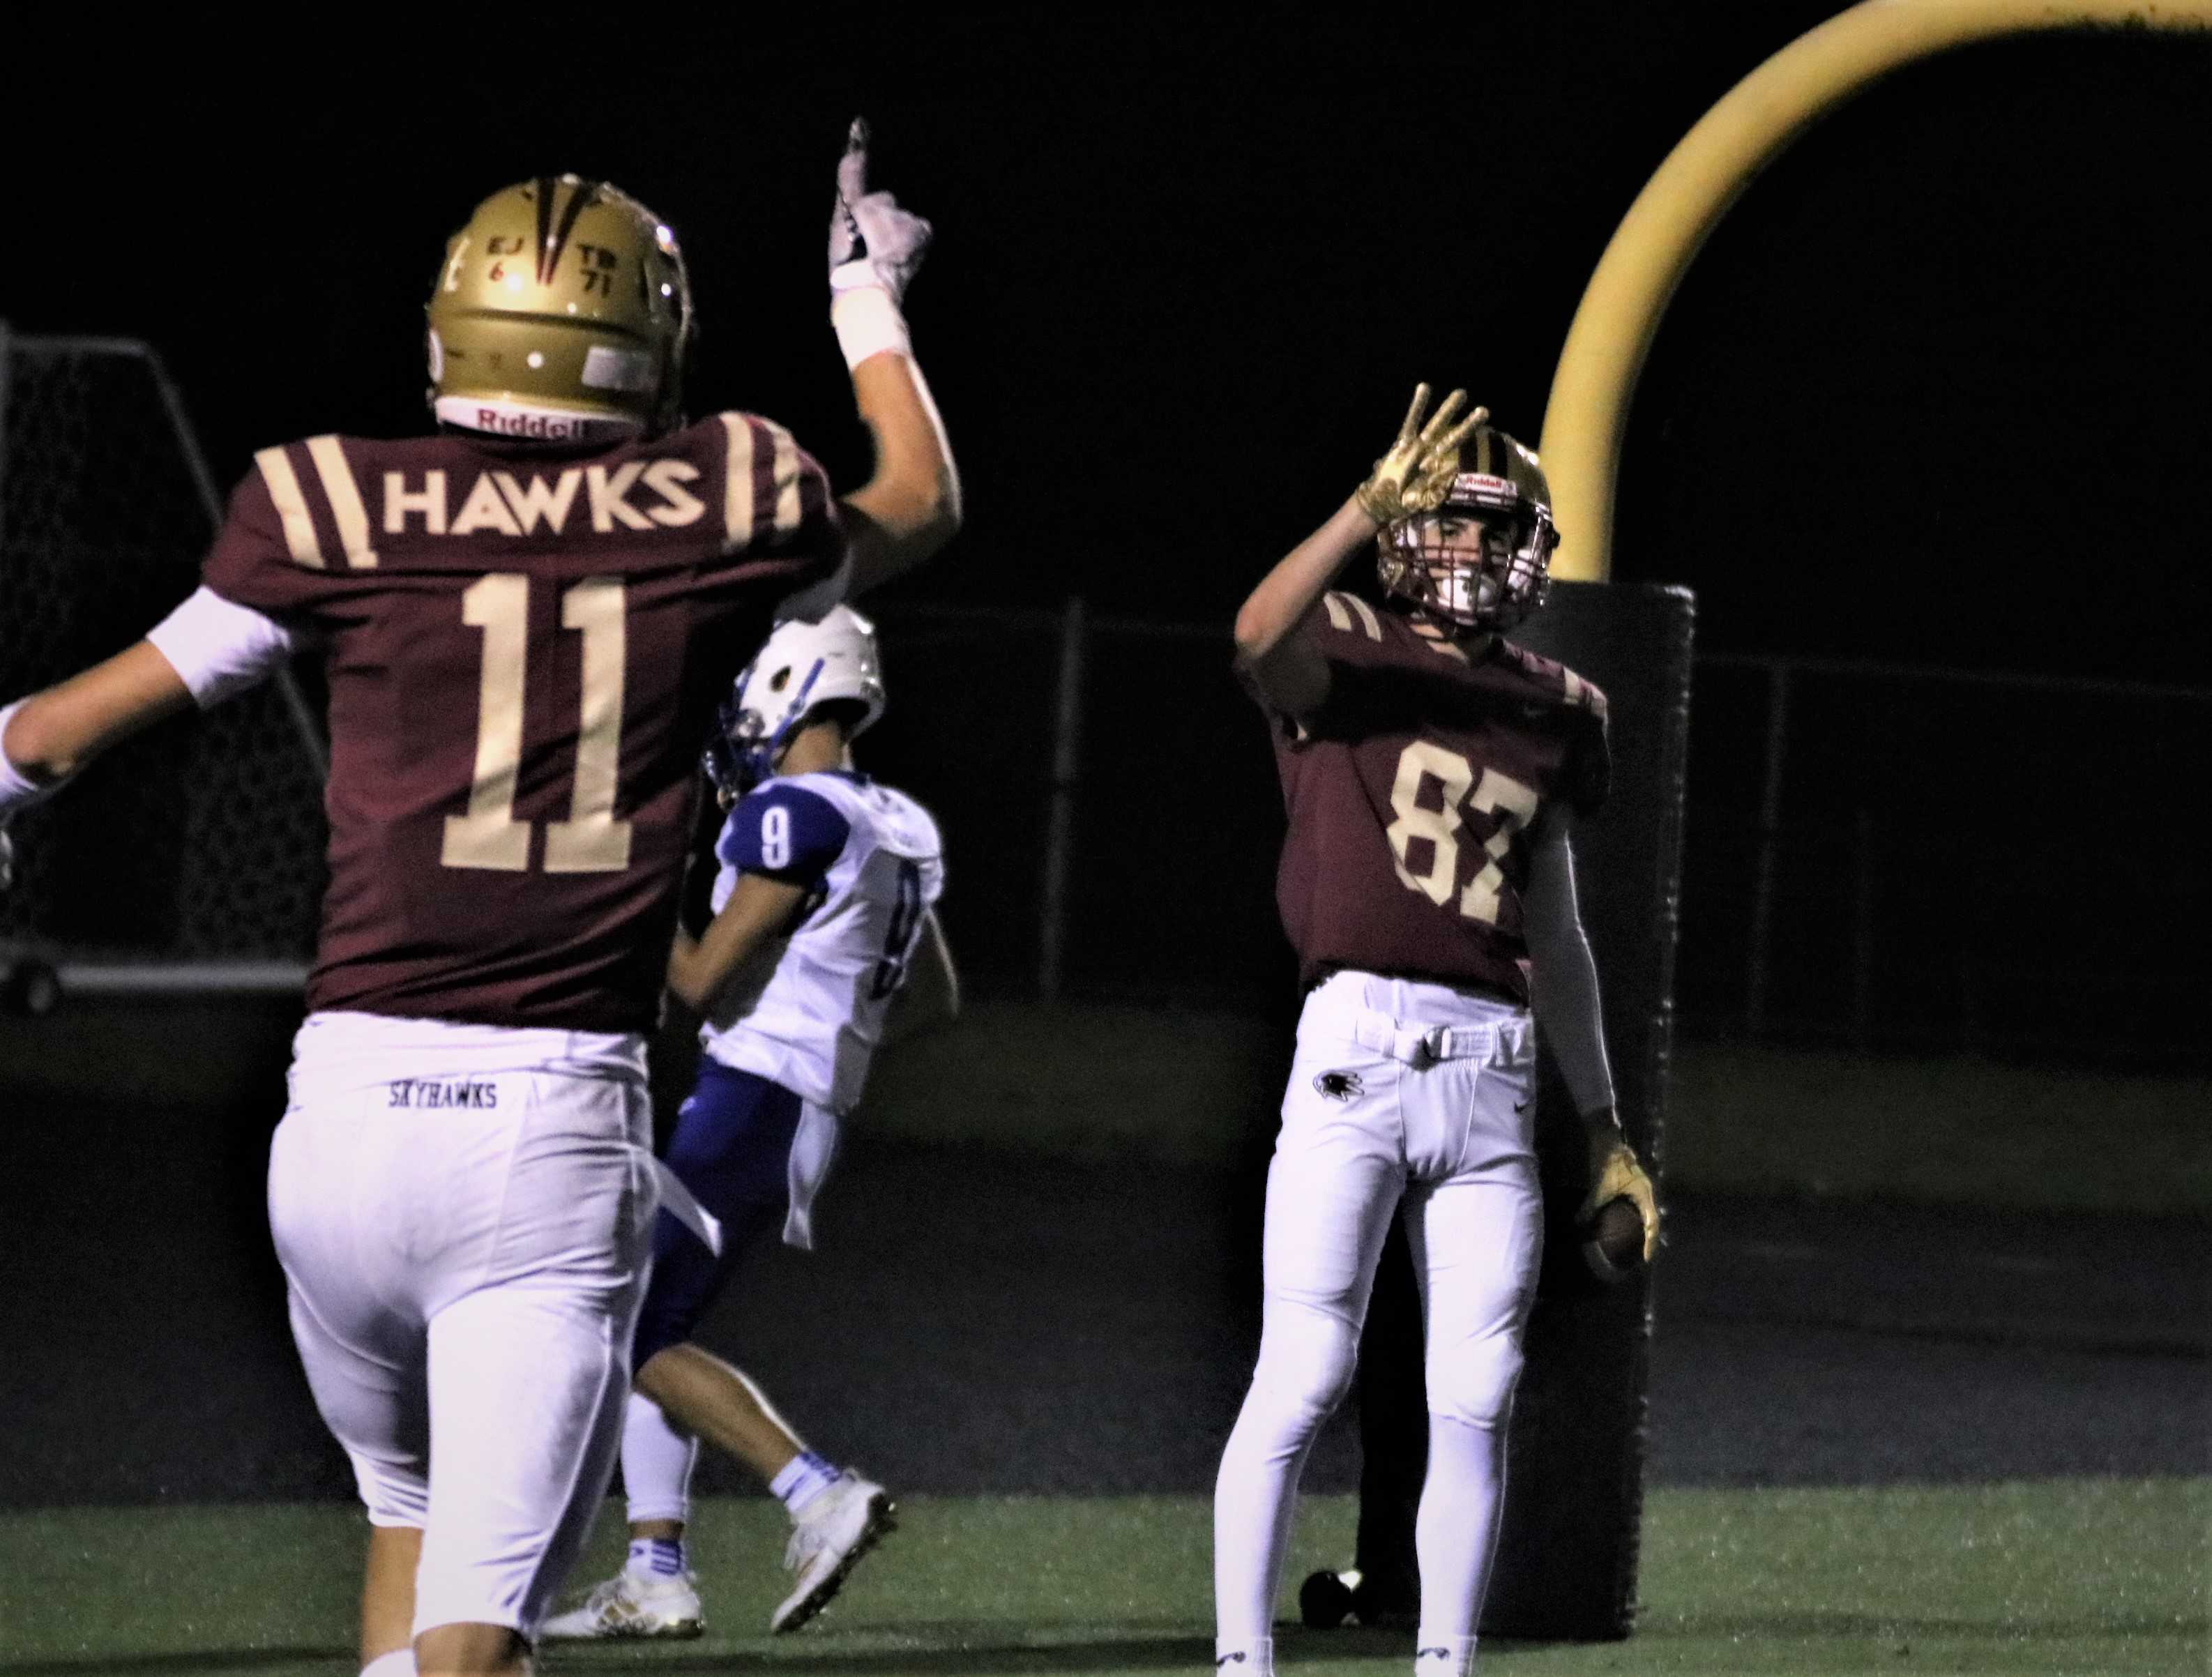 Mason Delinger (left) finished with one touchdown while Joshua Calo (right) finished with three Friday night for Southridge.